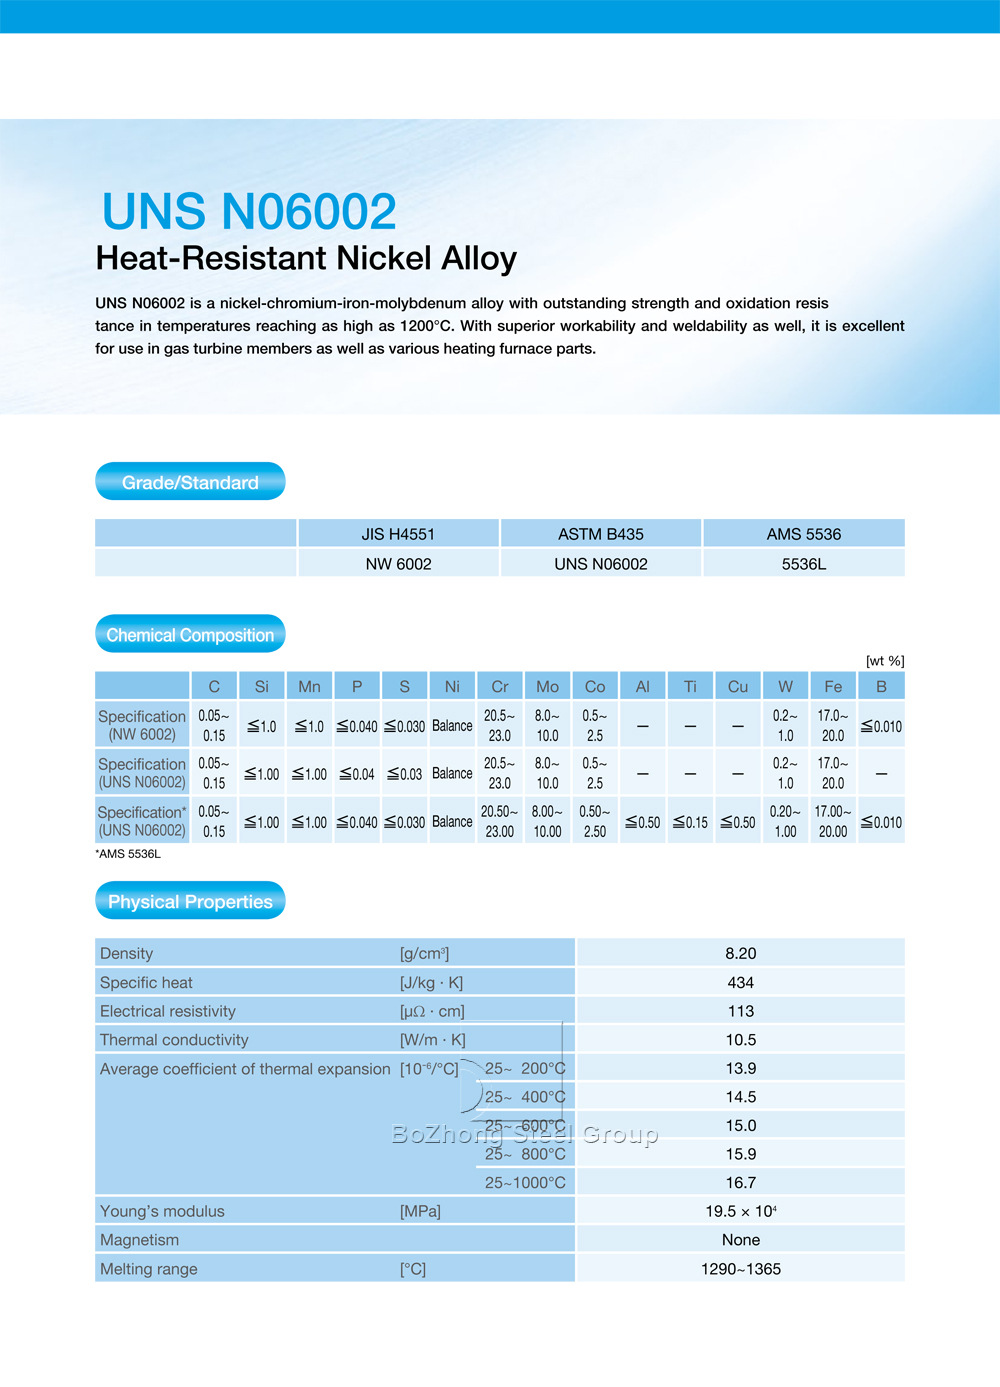 Heat-Resistant-Alloys-UNS-N06002,-Hastelloy-X-Alloy-In-China